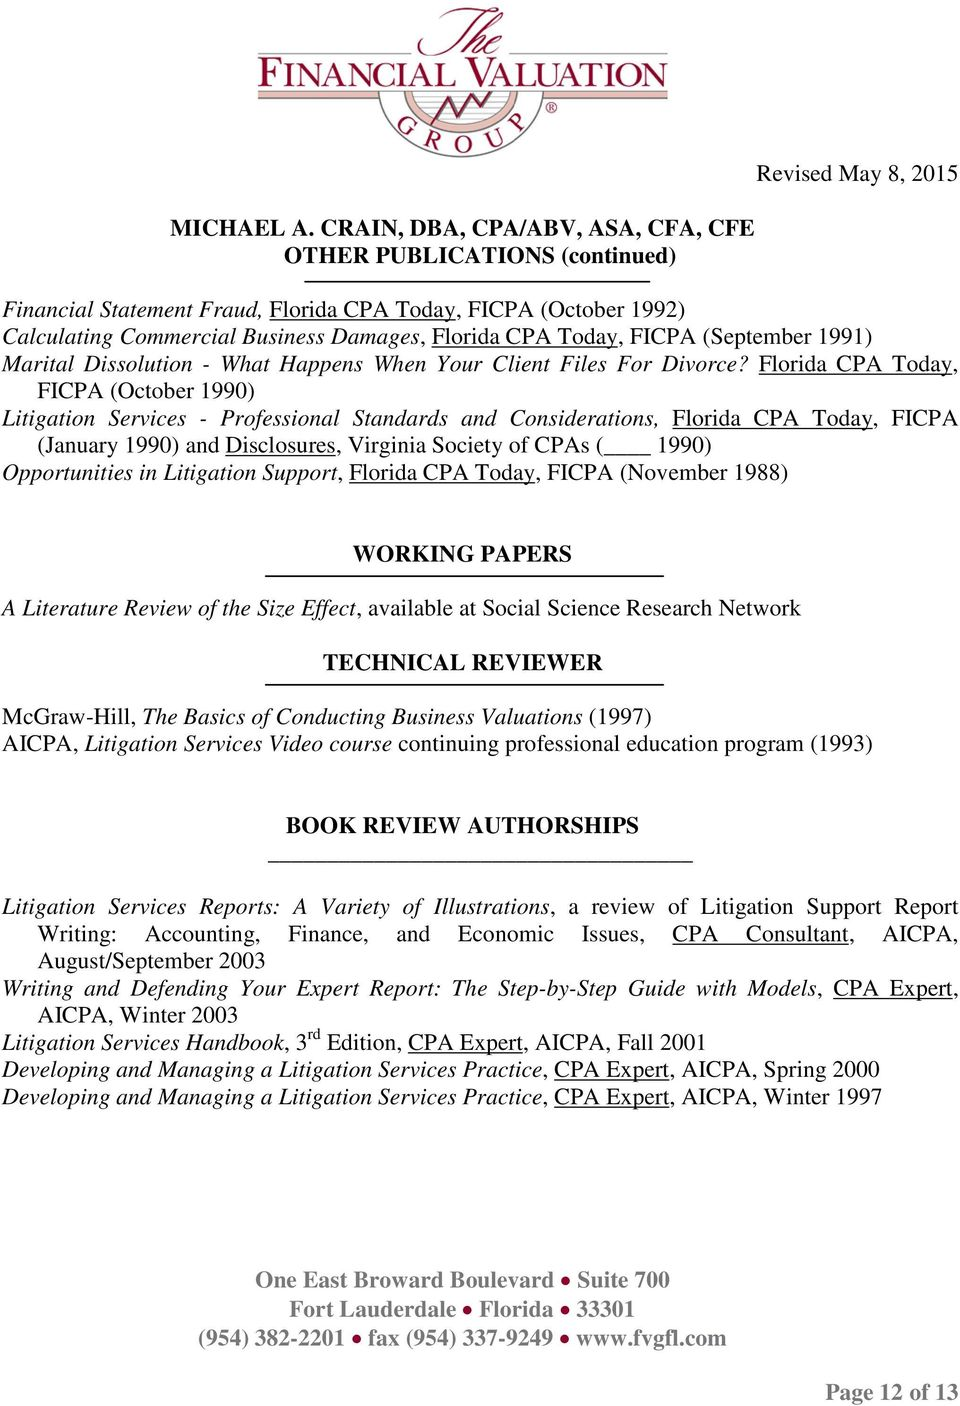 Florida CPA Today, FICPA (October 1990) Litigation Services - Professional Standards and Considerations, Florida CPA Today, FICPA (January 1990) and Disclosures, Virginia Society of CPAs ( 1990)